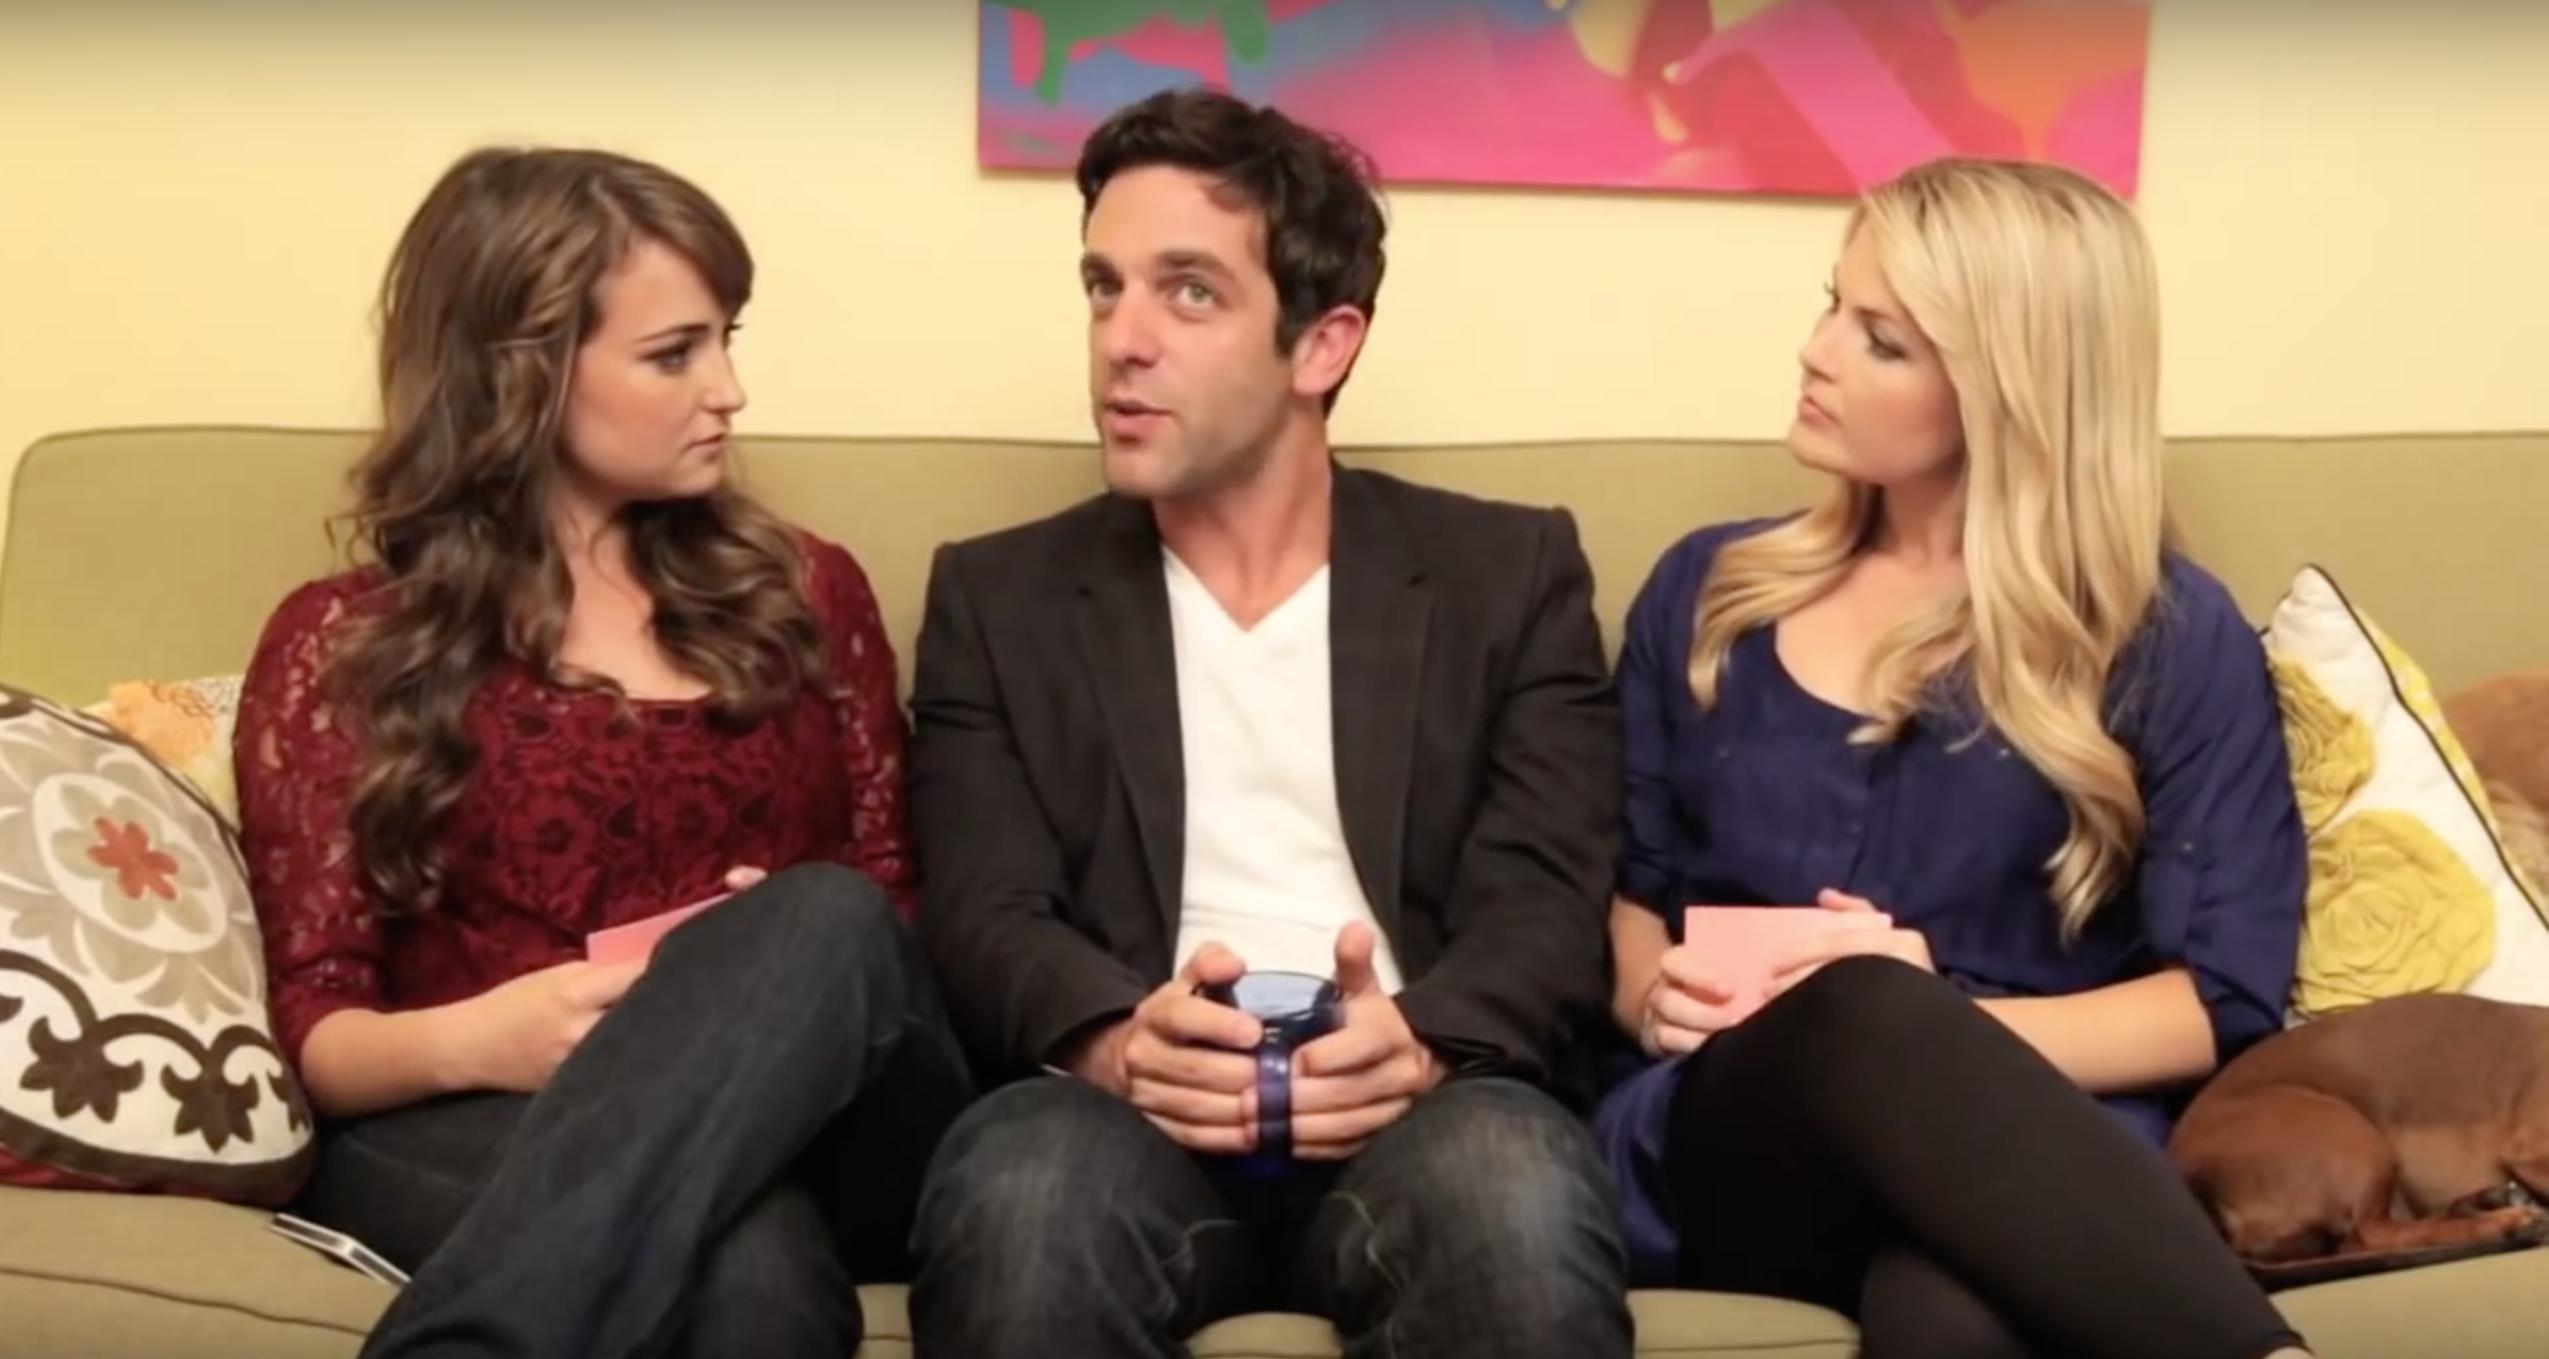 B.J. Novak, Milana Vayntrub, and Stevie Nelson in Let's Talk About Something More Interesting (2011)